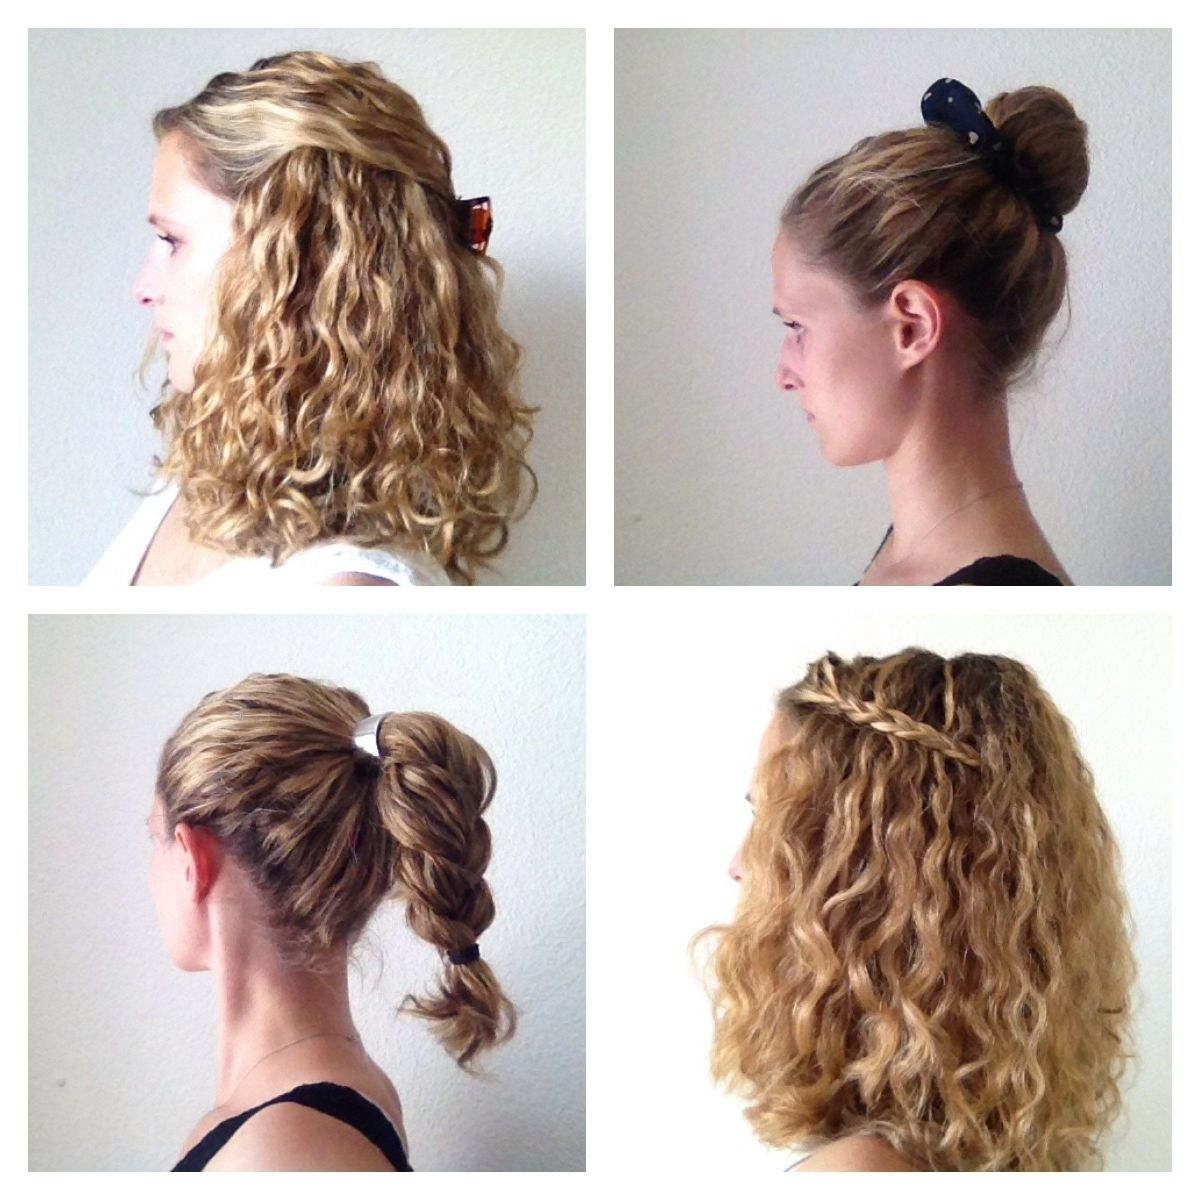 Easy Hairstyles Forong Naturally Curly Hair Quick Mediumength Cute For Favorite Easy Wedding Hairstyles For Long Curly Hair (View 7 of 15)